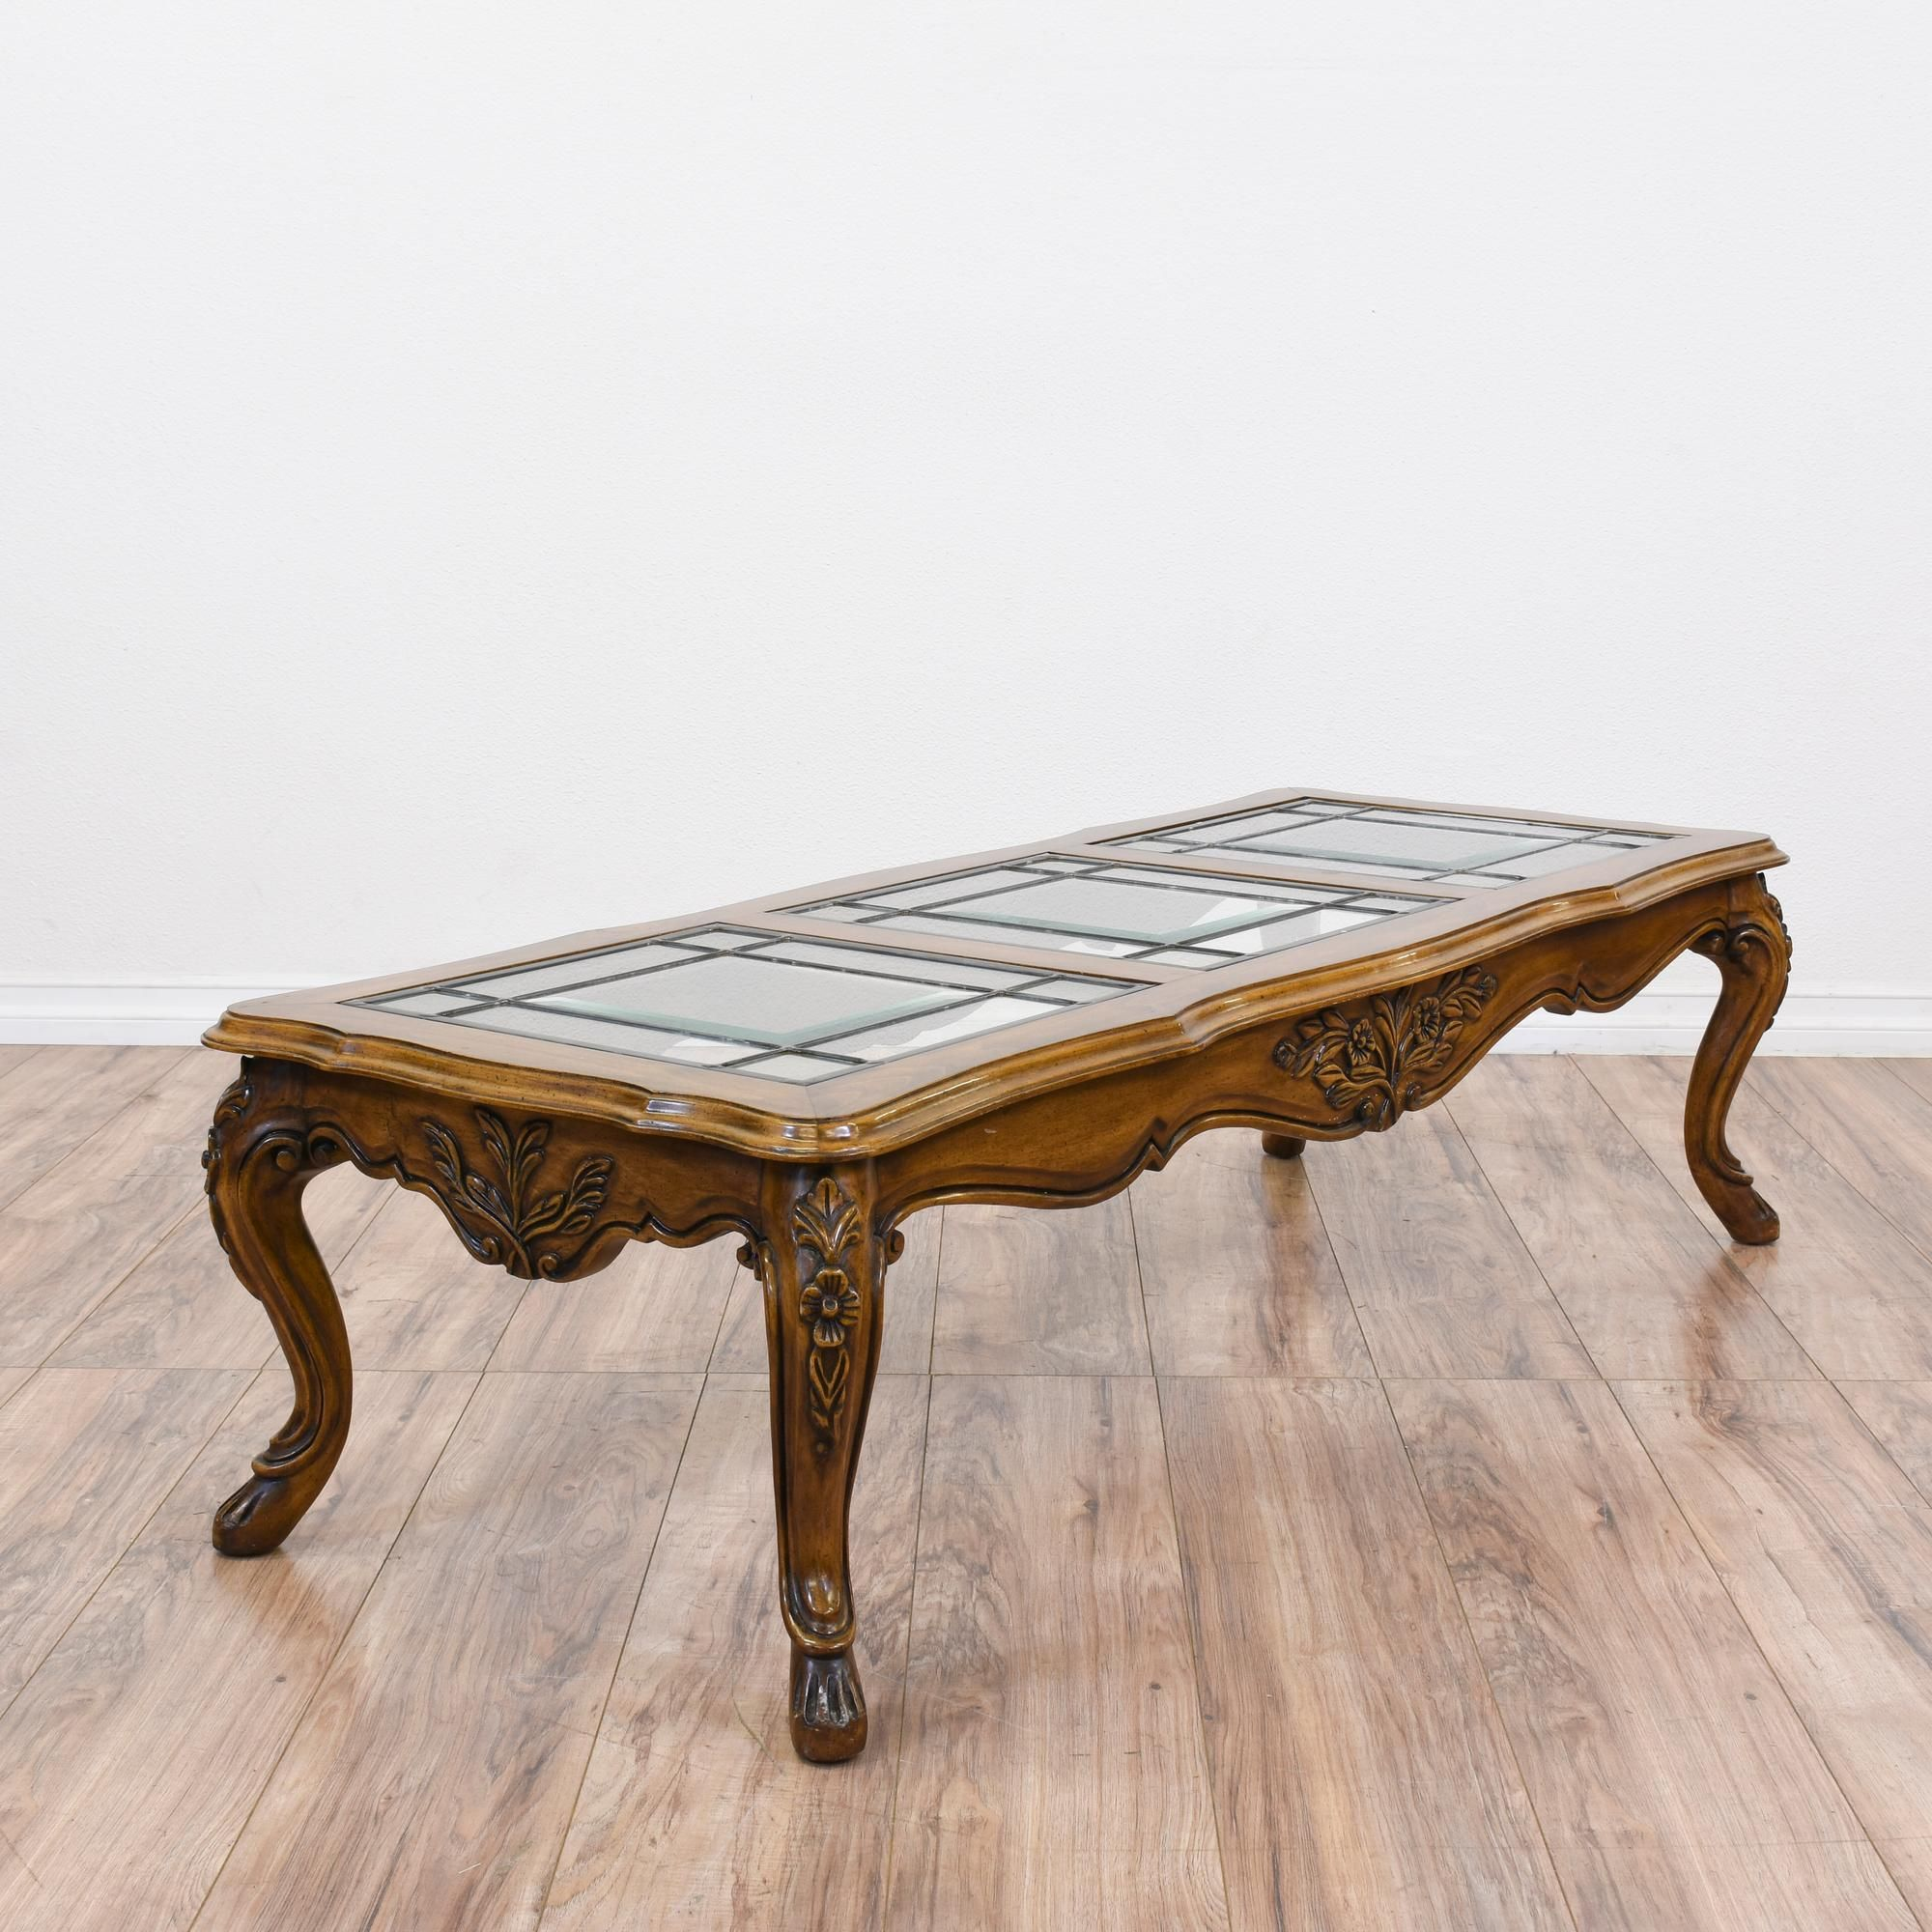 This French Provincial Coffee Table Is Featured In A Solid Wood With A Glossy Oak Finish This Coffee Table Coffee Table Glass Top Coffee Table Glass Top Table [ 2000 x 2000 Pixel ]